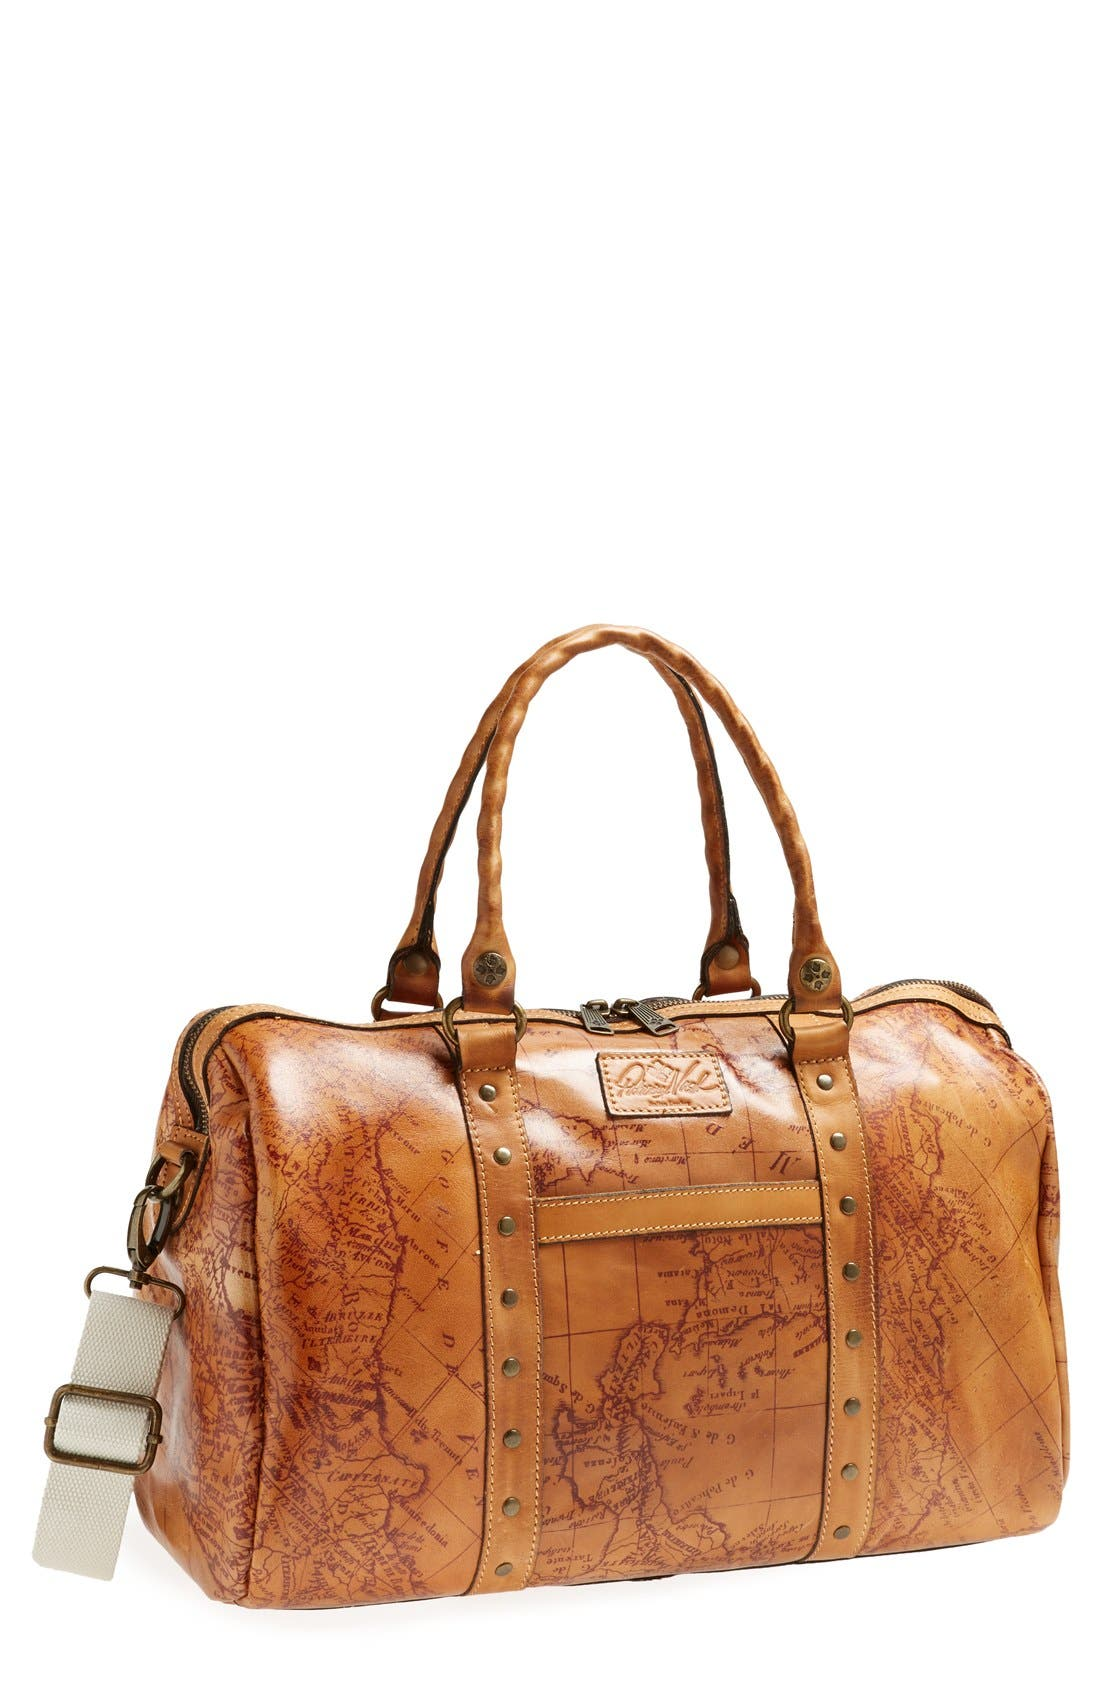 Main Image - Patricia Nash 'Stressa' Leather Overnight Bag (16 Inch)